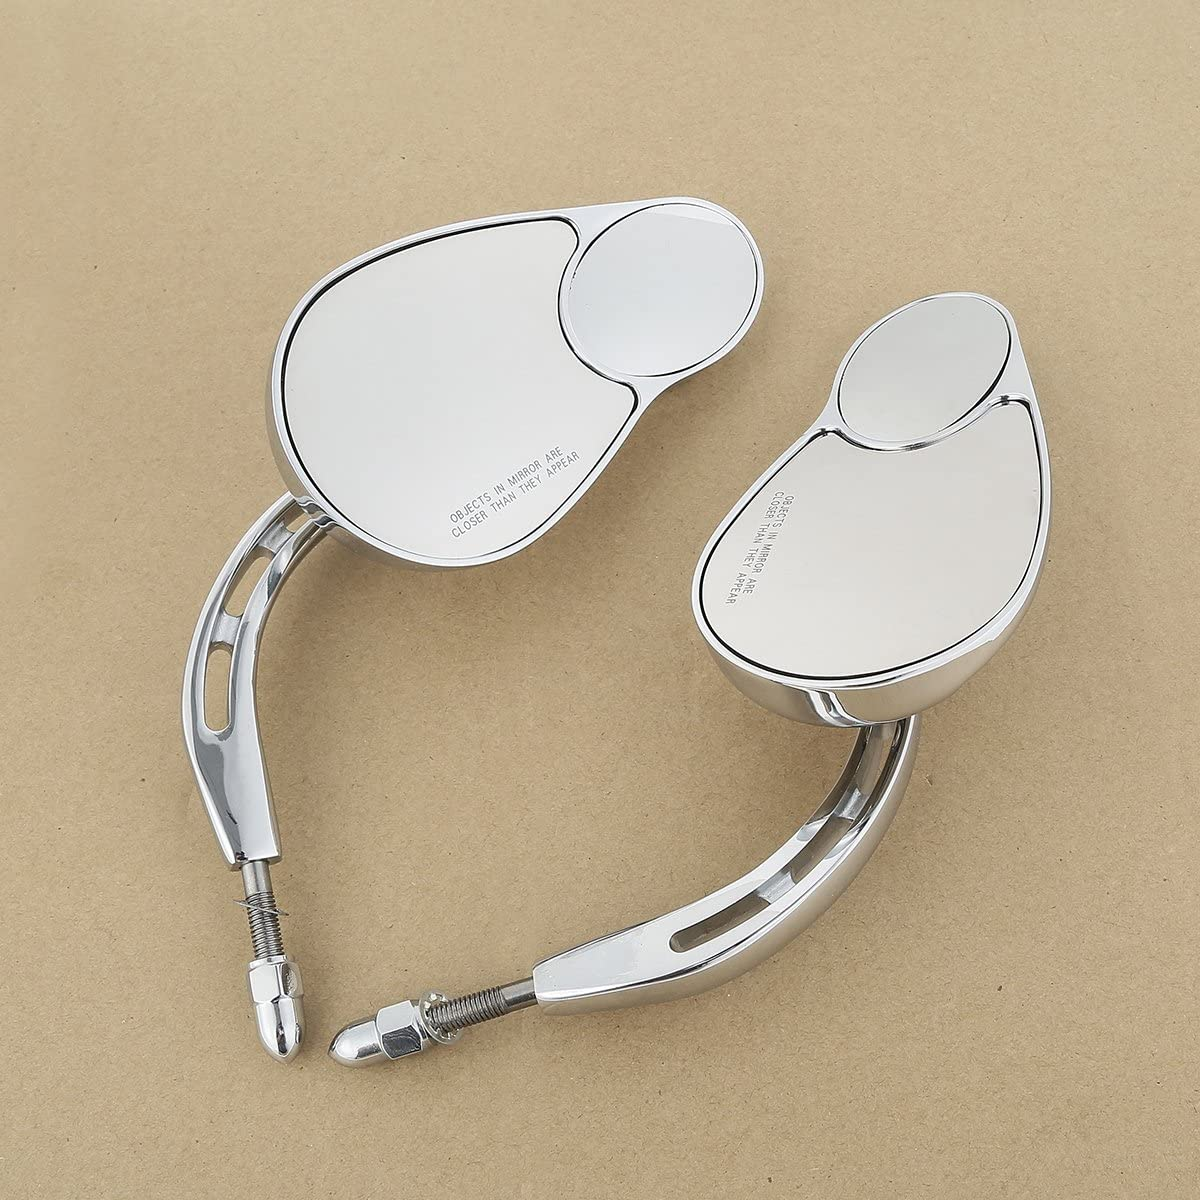 TCT-MT 8mm Rear View Mirrors Split Vision For Mirror All items free shipping Fit Harley Large discharge sale